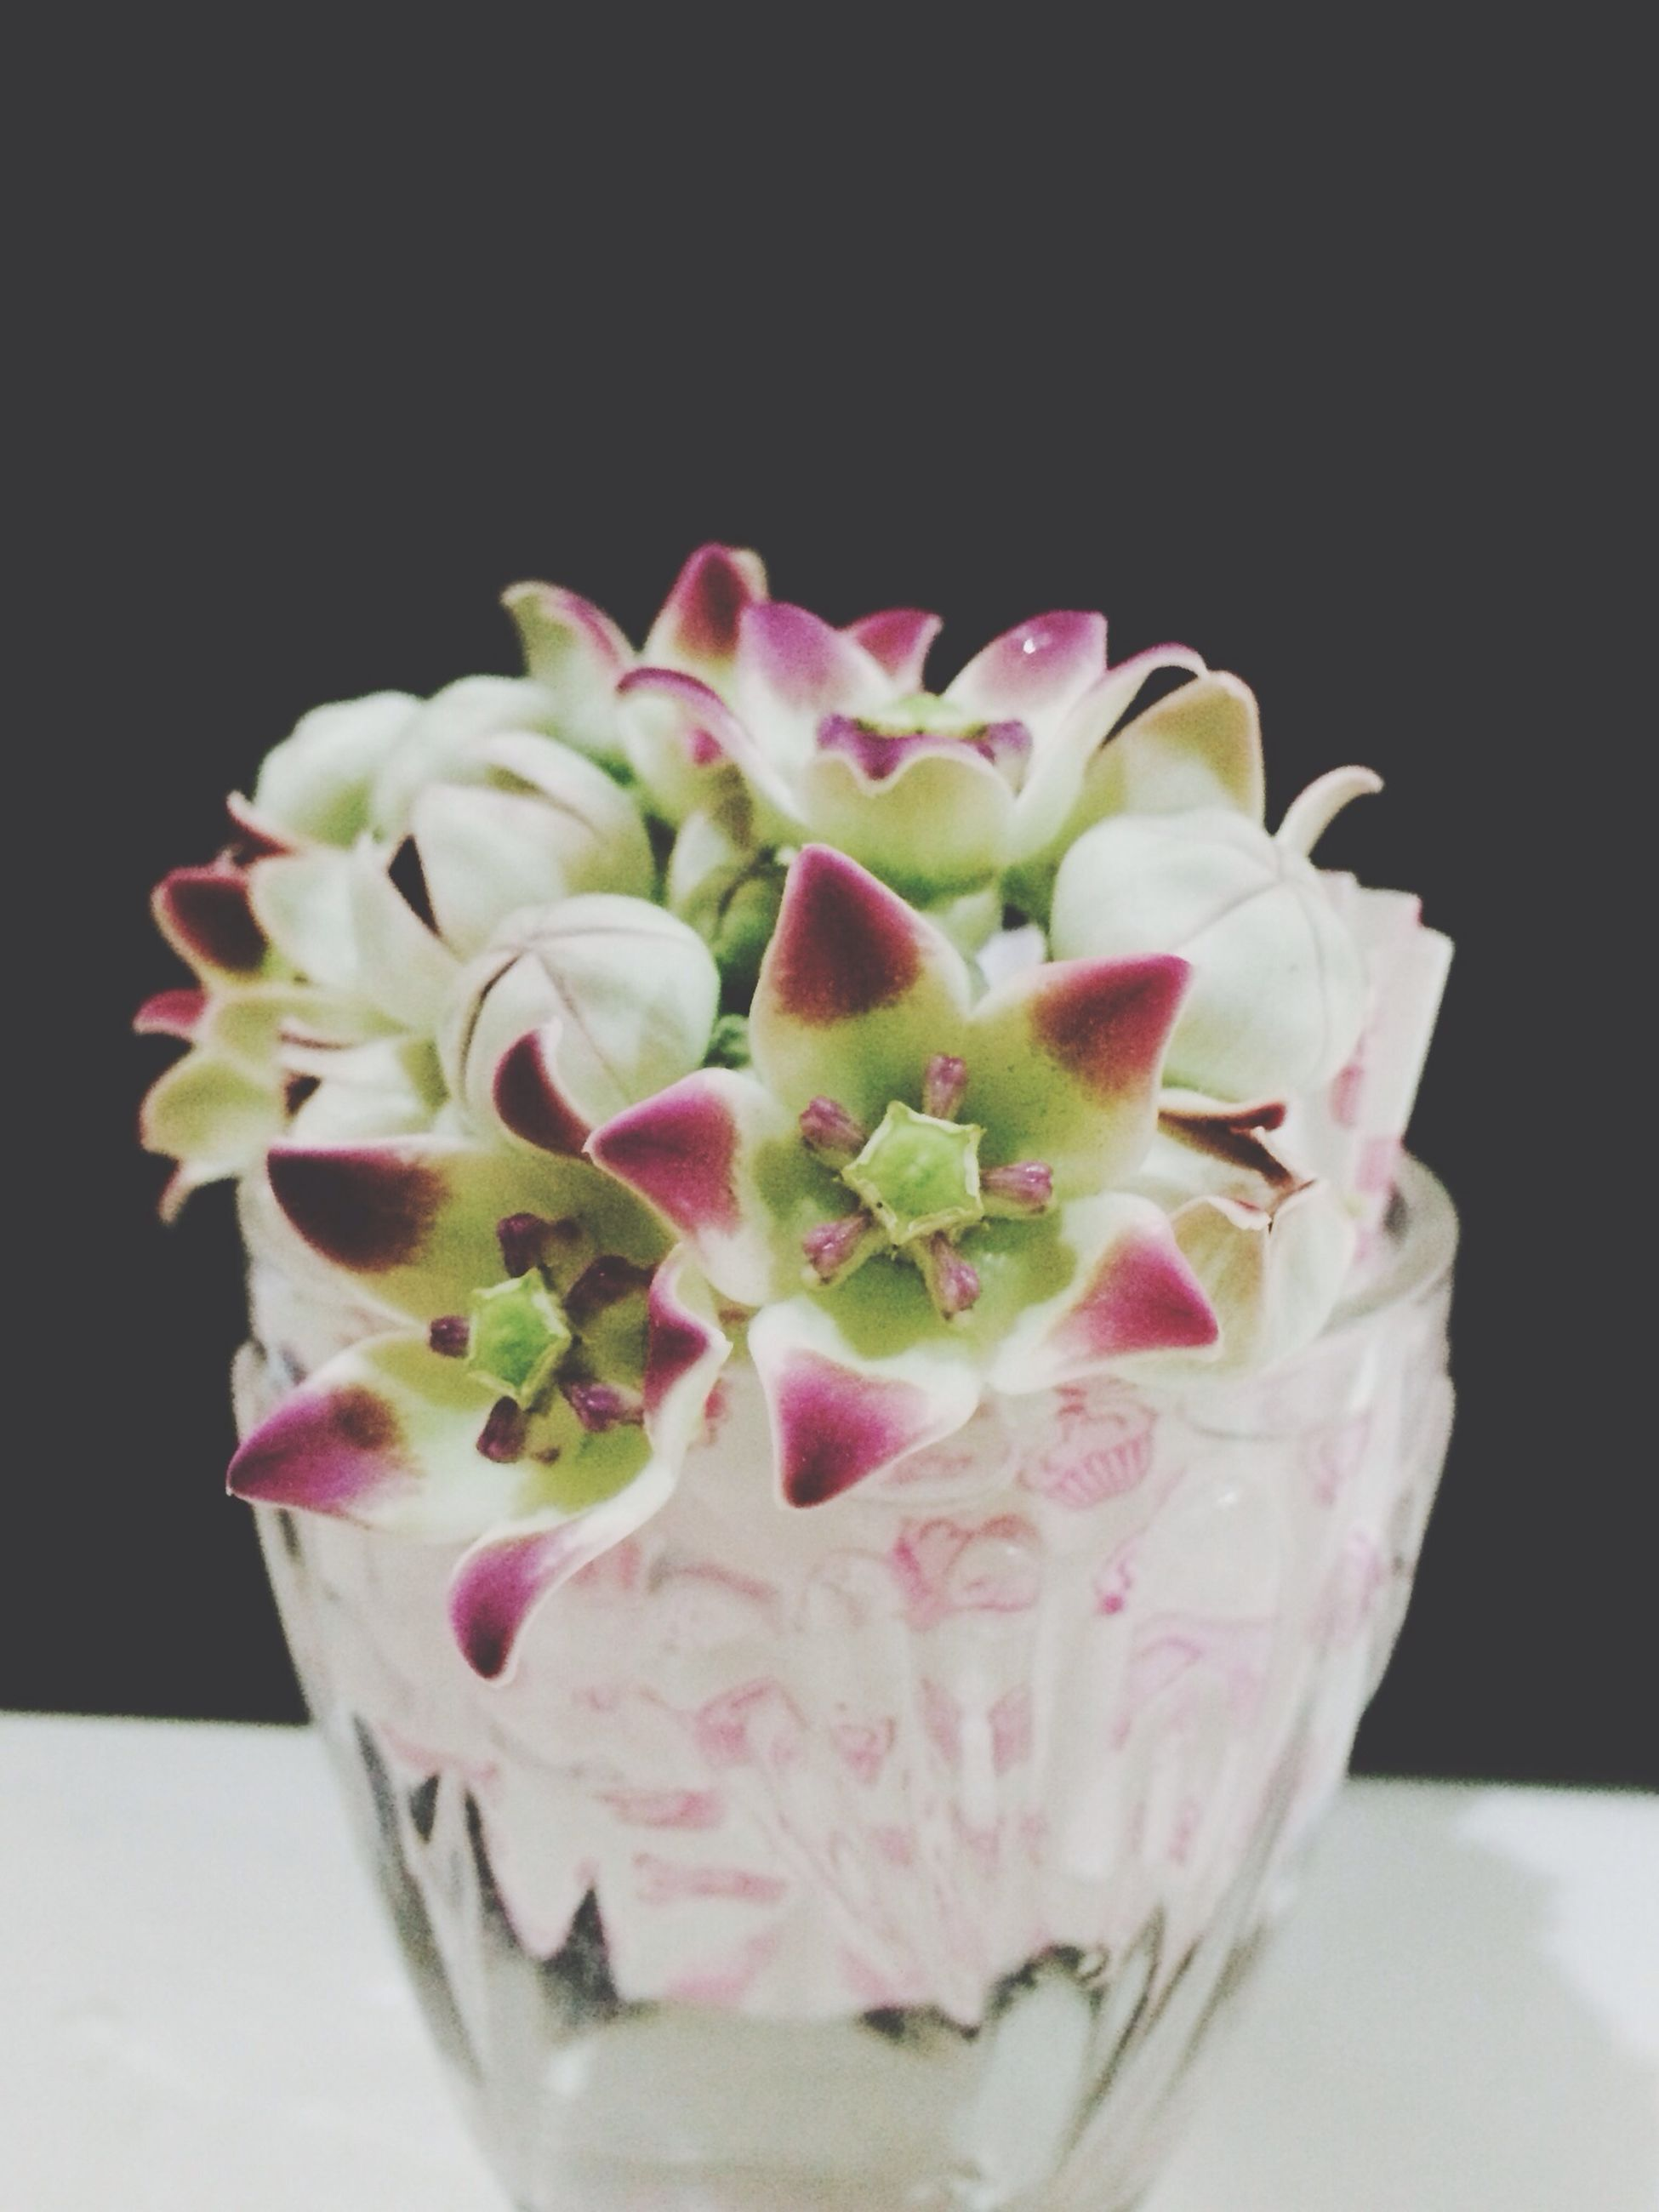 freshness, indoors, flower, studio shot, close-up, still life, table, food and drink, fragility, petal, vase, black background, pink color, flower head, food, glass - material, copy space, decoration, no people, white background